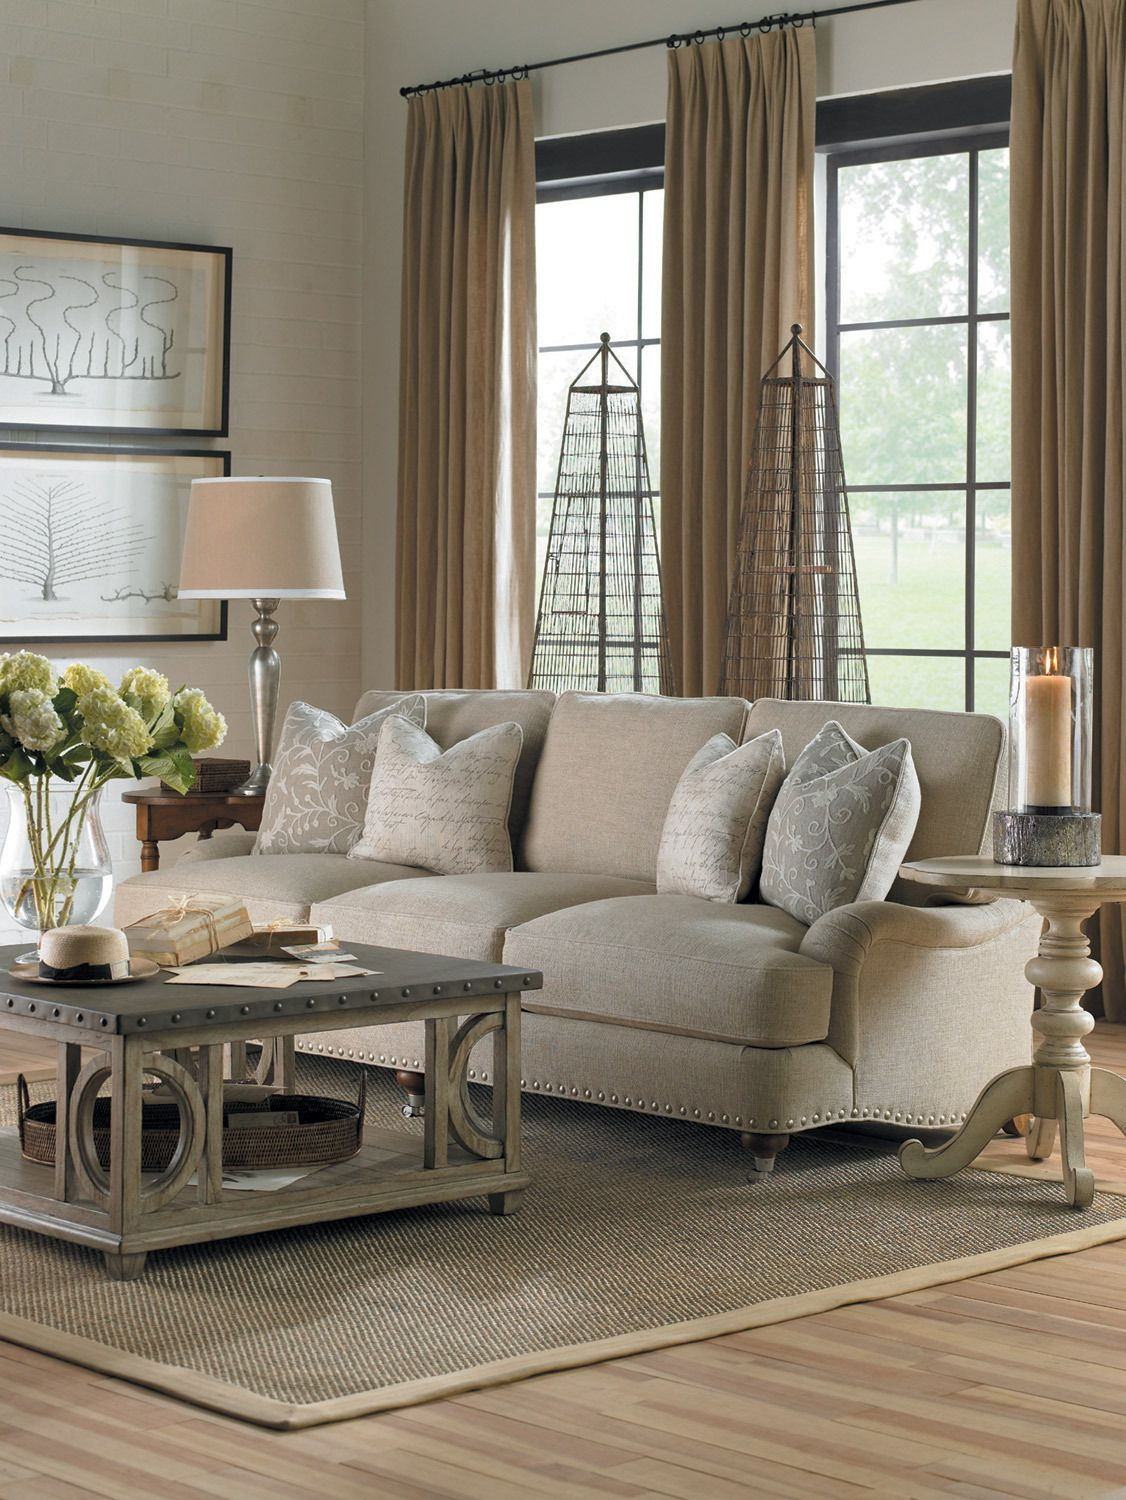 Delicieux Twilight Bay Carley Sofa | Lexington Furniture | Home Gallery Stores